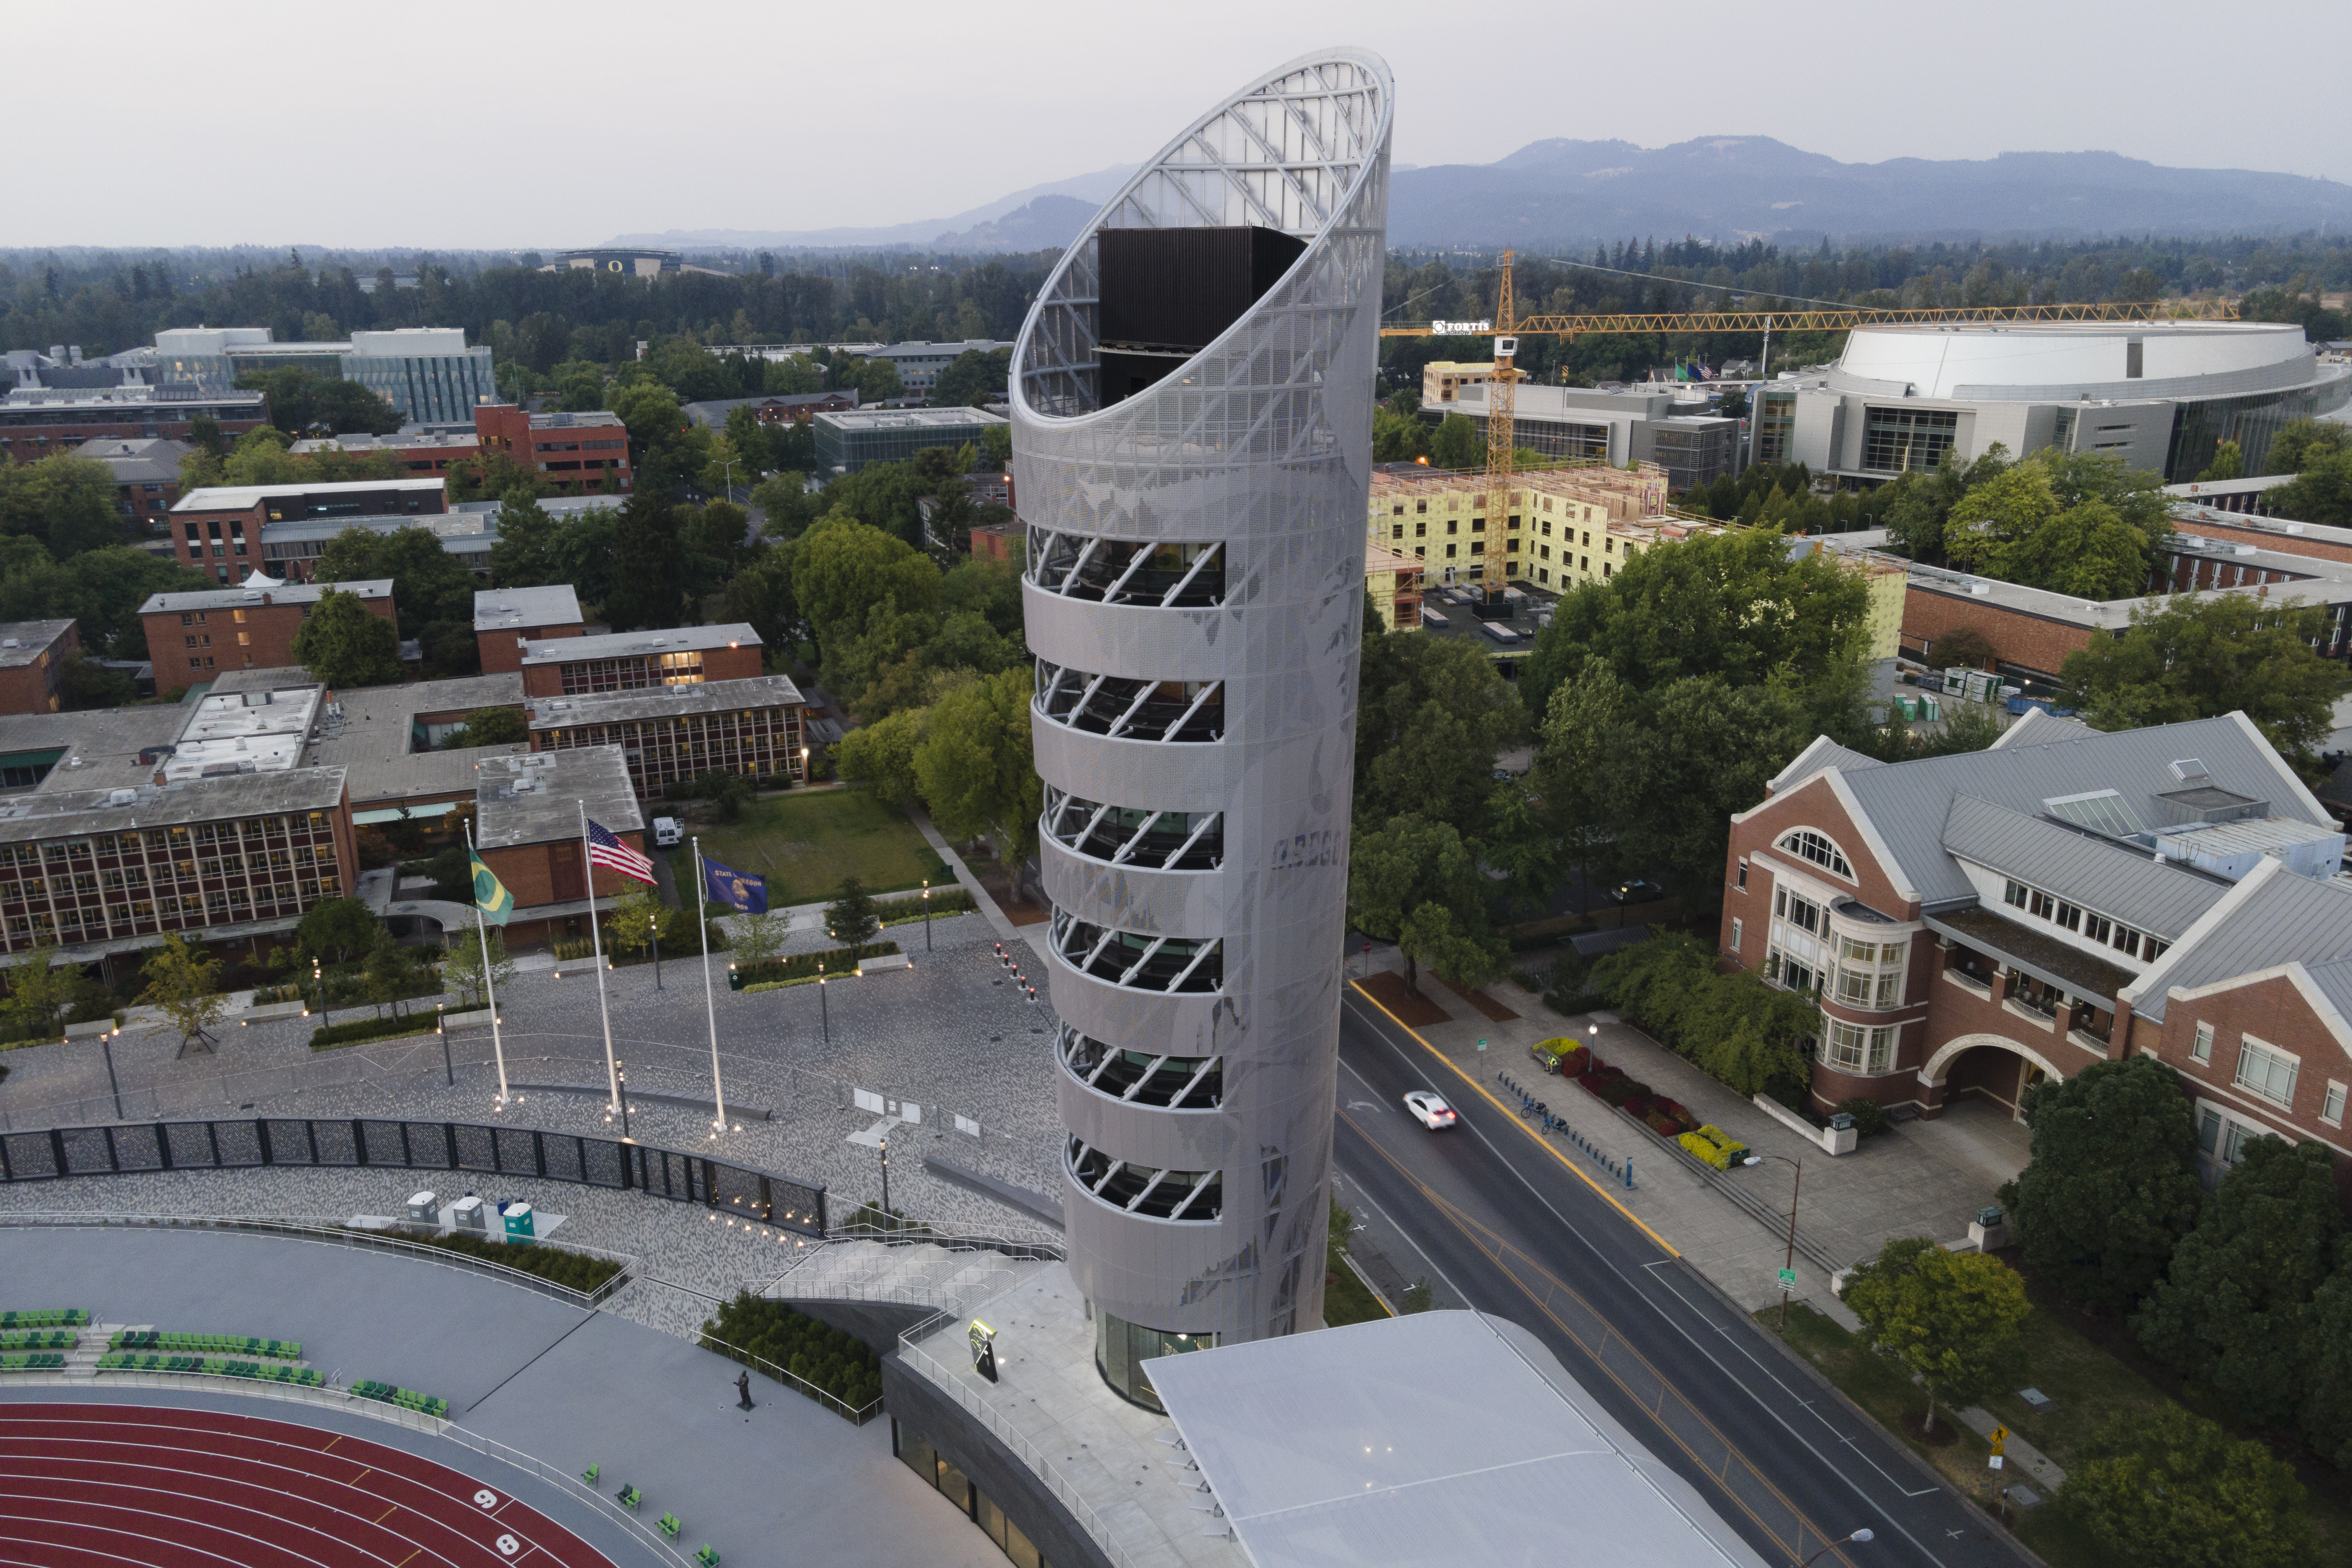 The 10-story Hayward Tower features an observation deck and multiple viewing areas.